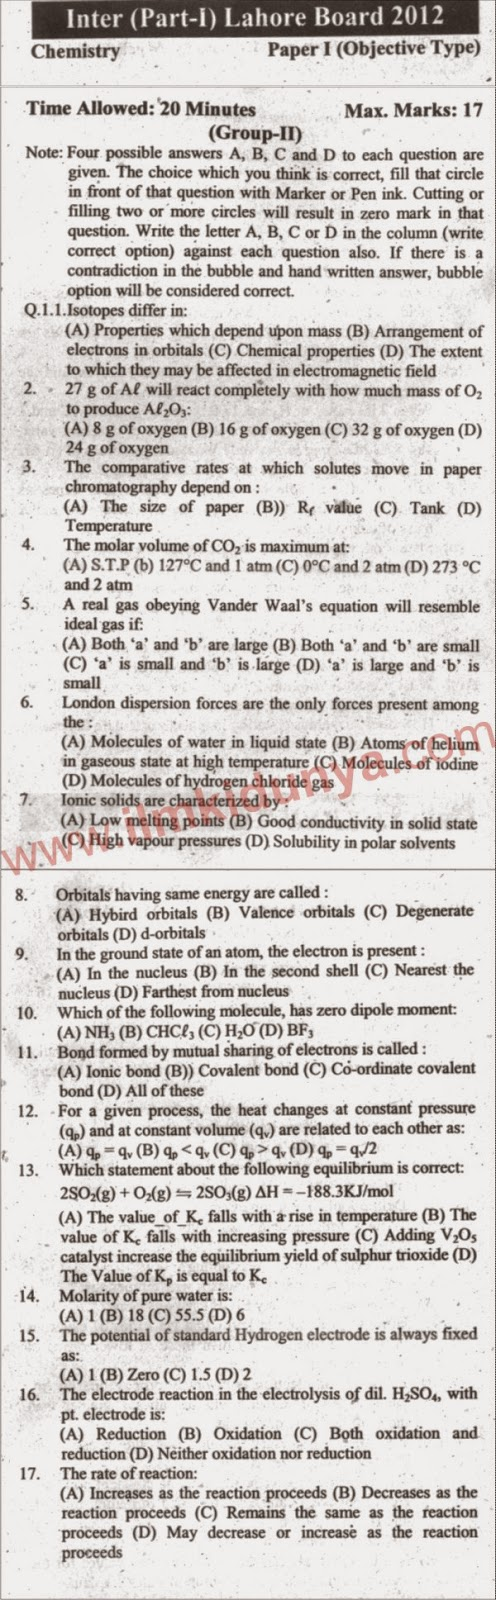 Lahore Board Chemistry Inter Part 1 Past Paper 2012 Objective Group 2